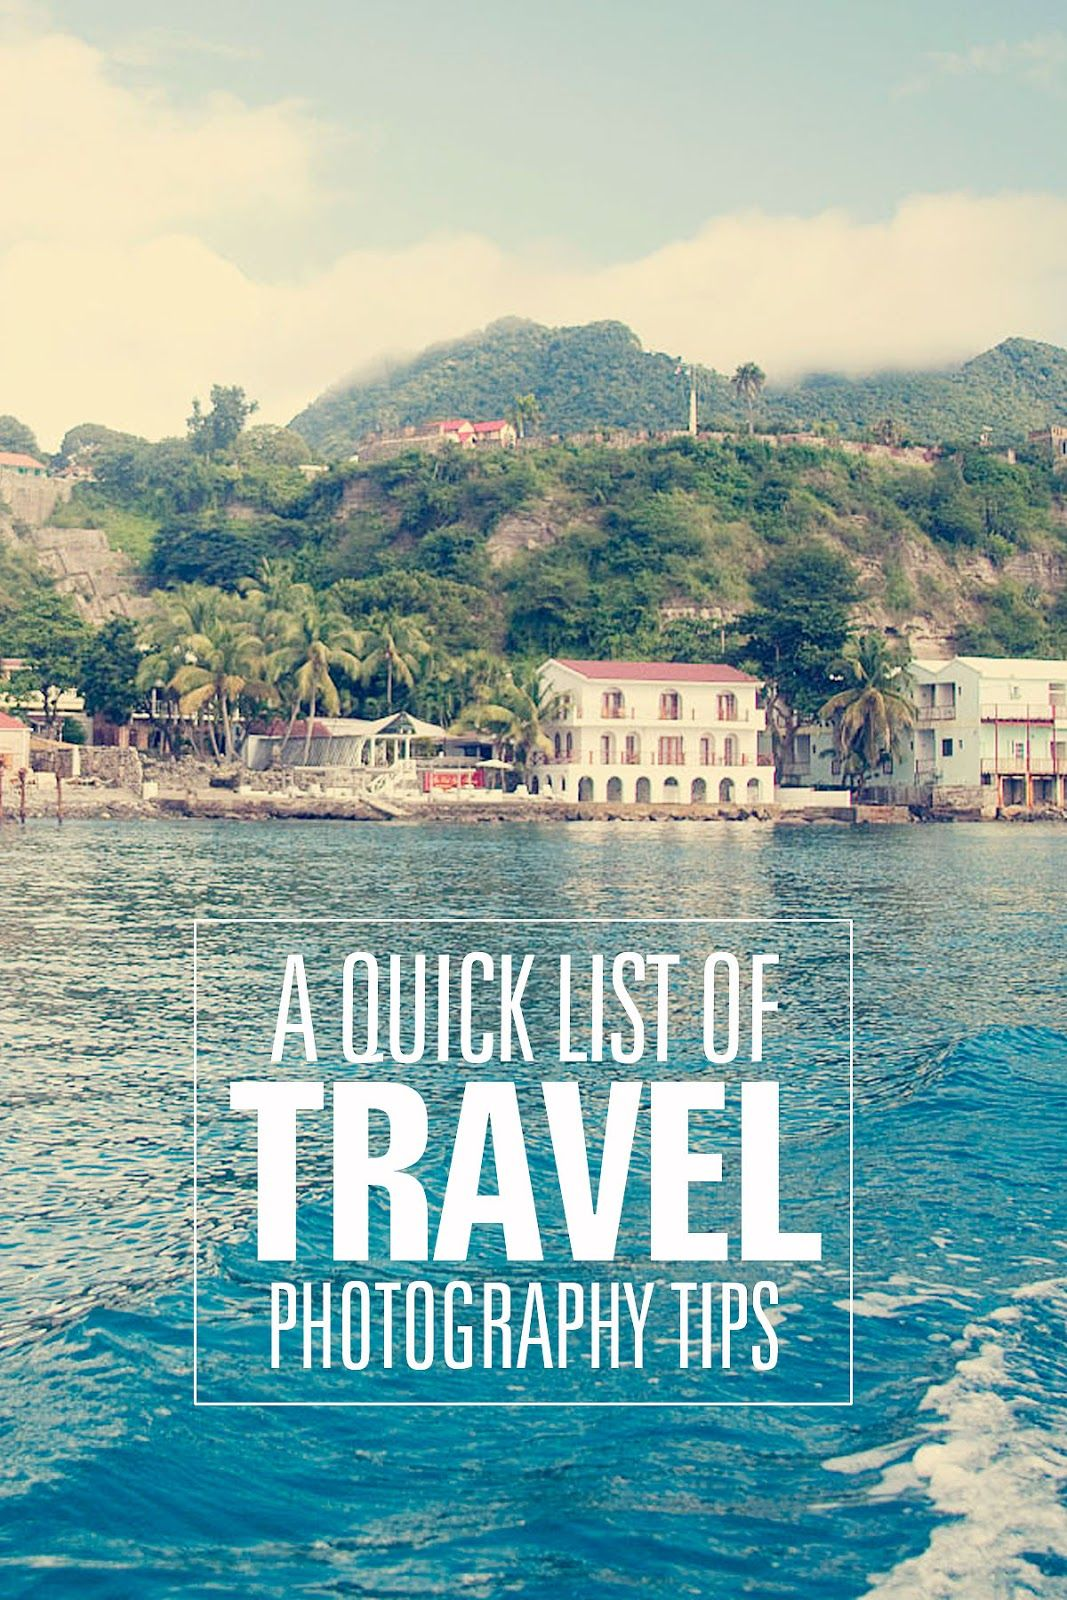 5 Quick Tips for Capturing Scenic Travel Photos | I want ...